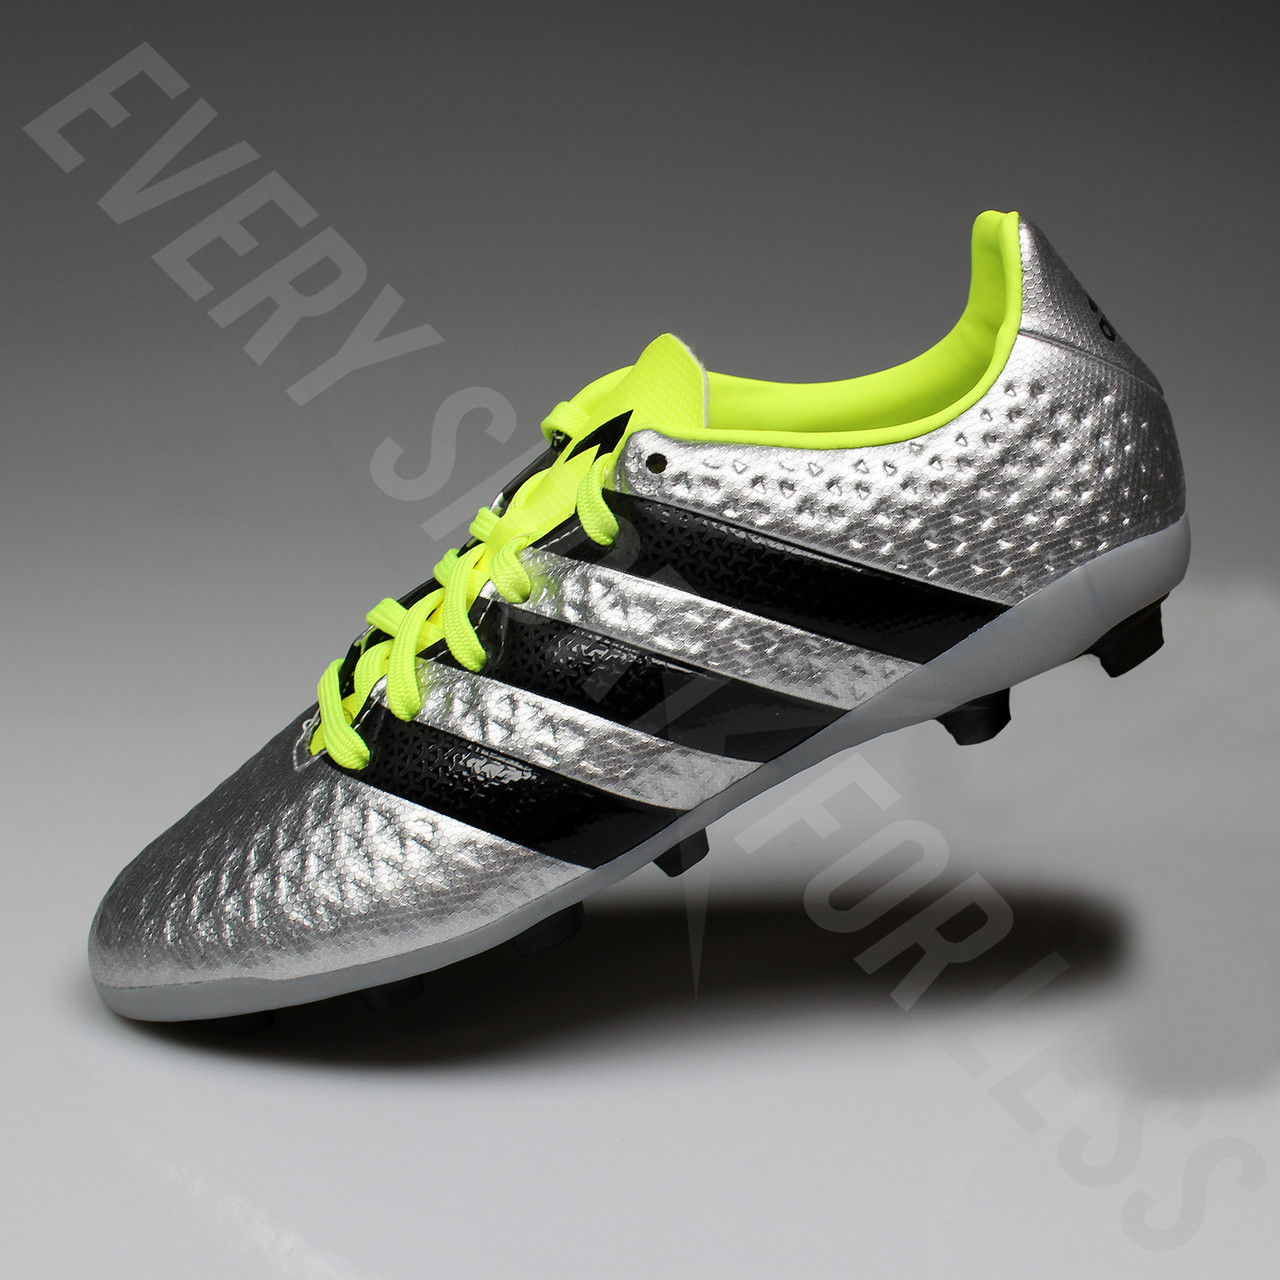 ff9c86f5a1f Adidas Ace 16.4 FxG Junior Soccer Cleat S42142 - Silver Black Yellow